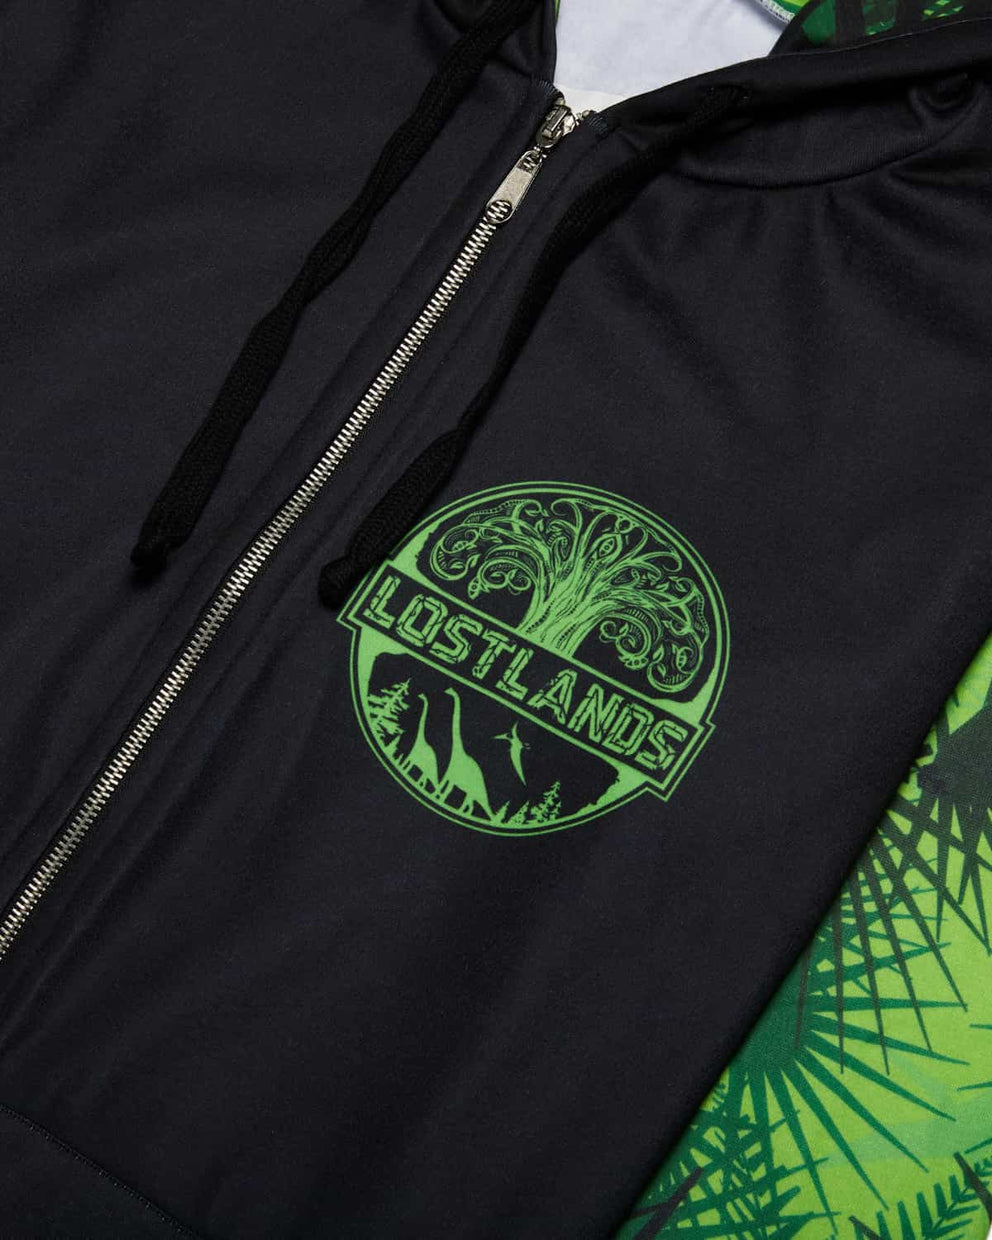 Lost Lands 'Foliage' Lineup Full-Zip Hoodie - Black/Green